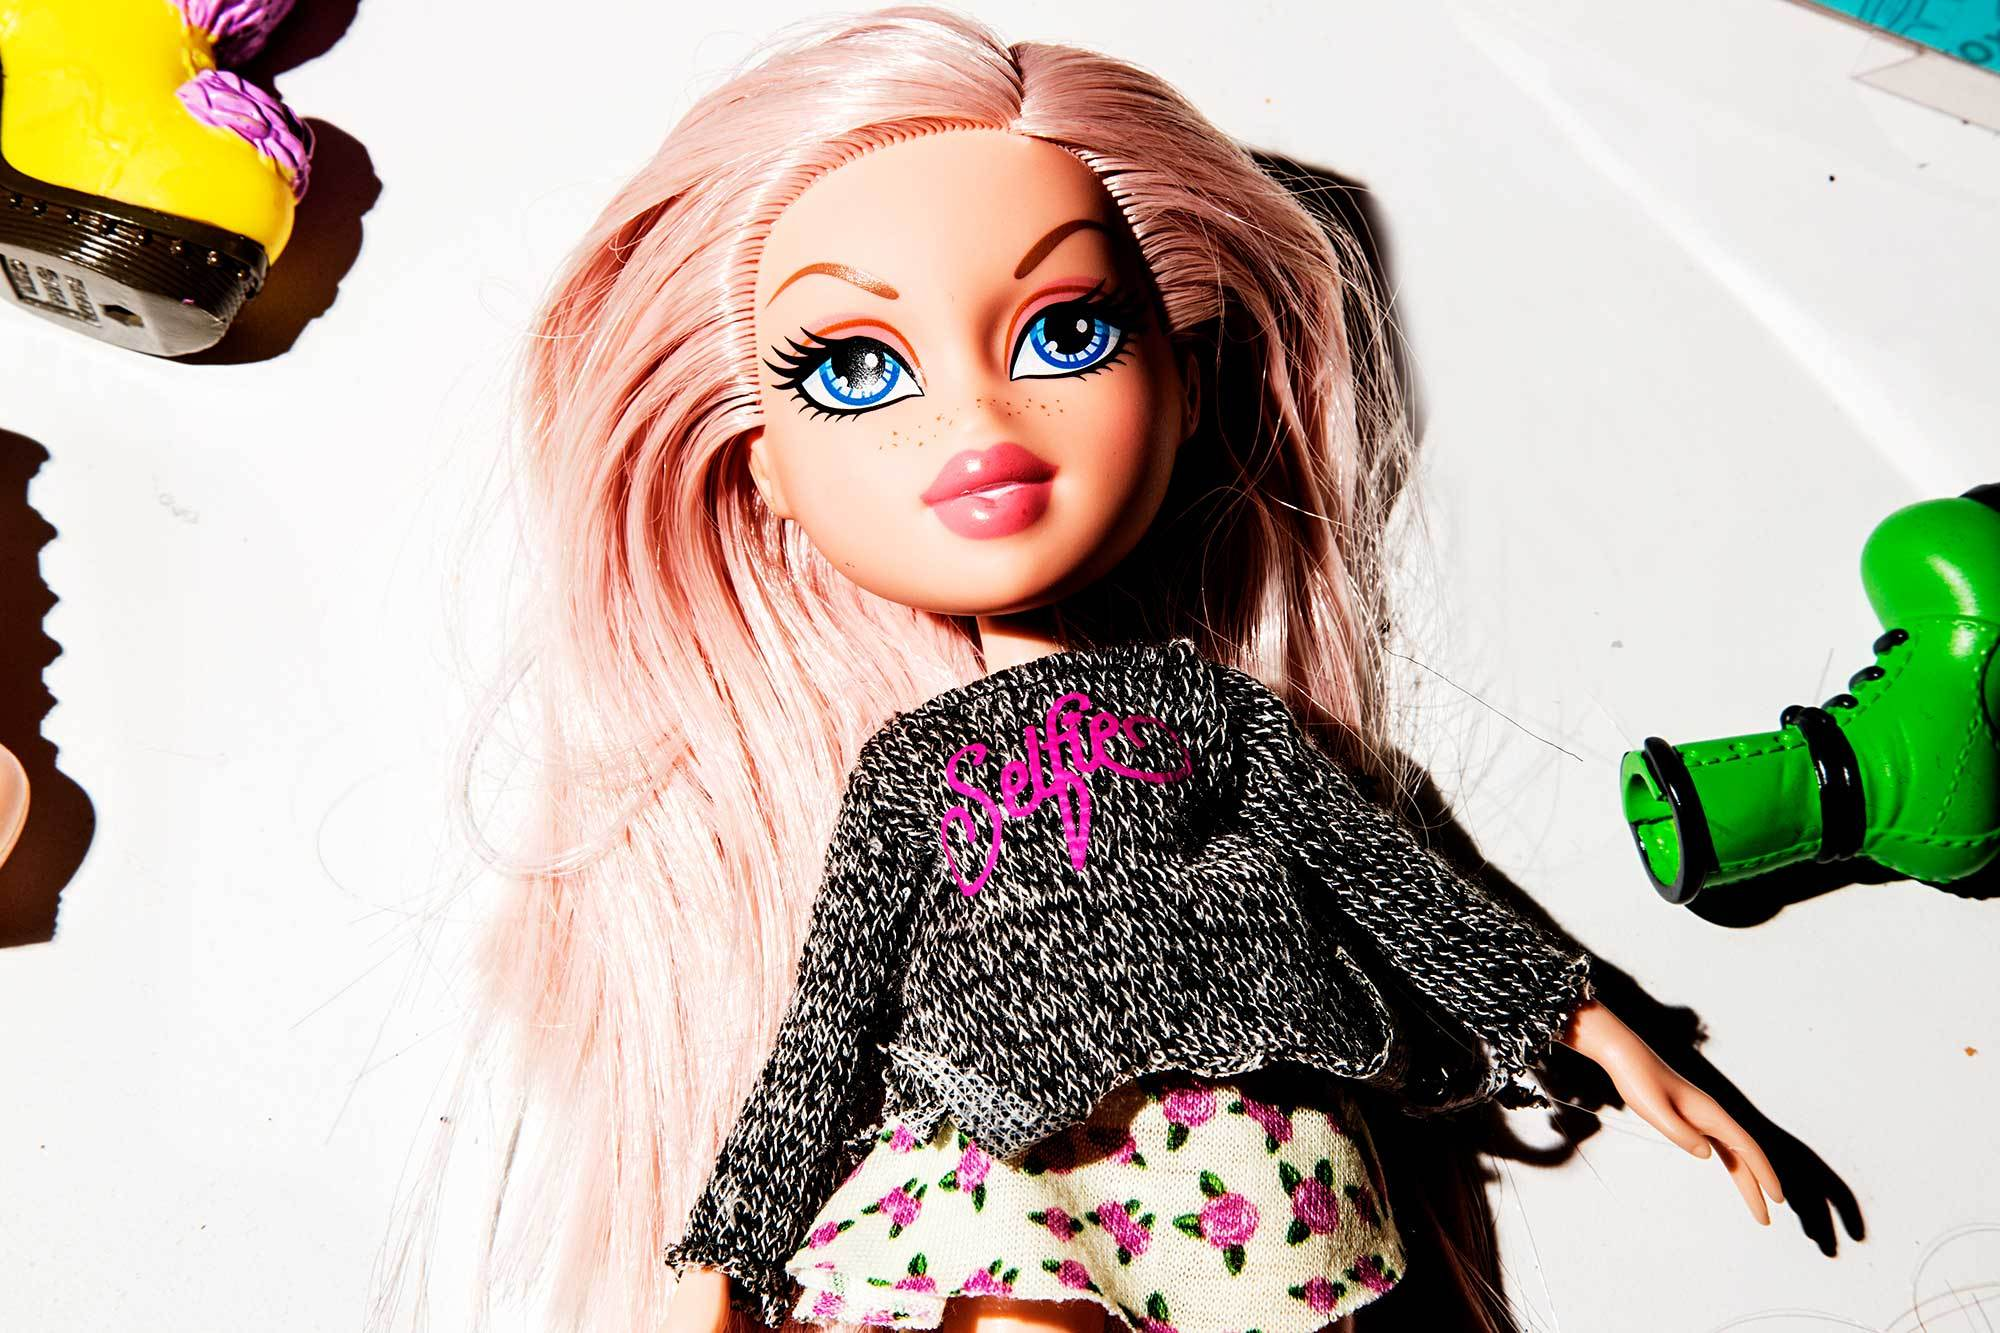 Meet The Designers Behind The Controversial Bratz Dolls - Broadly-3557